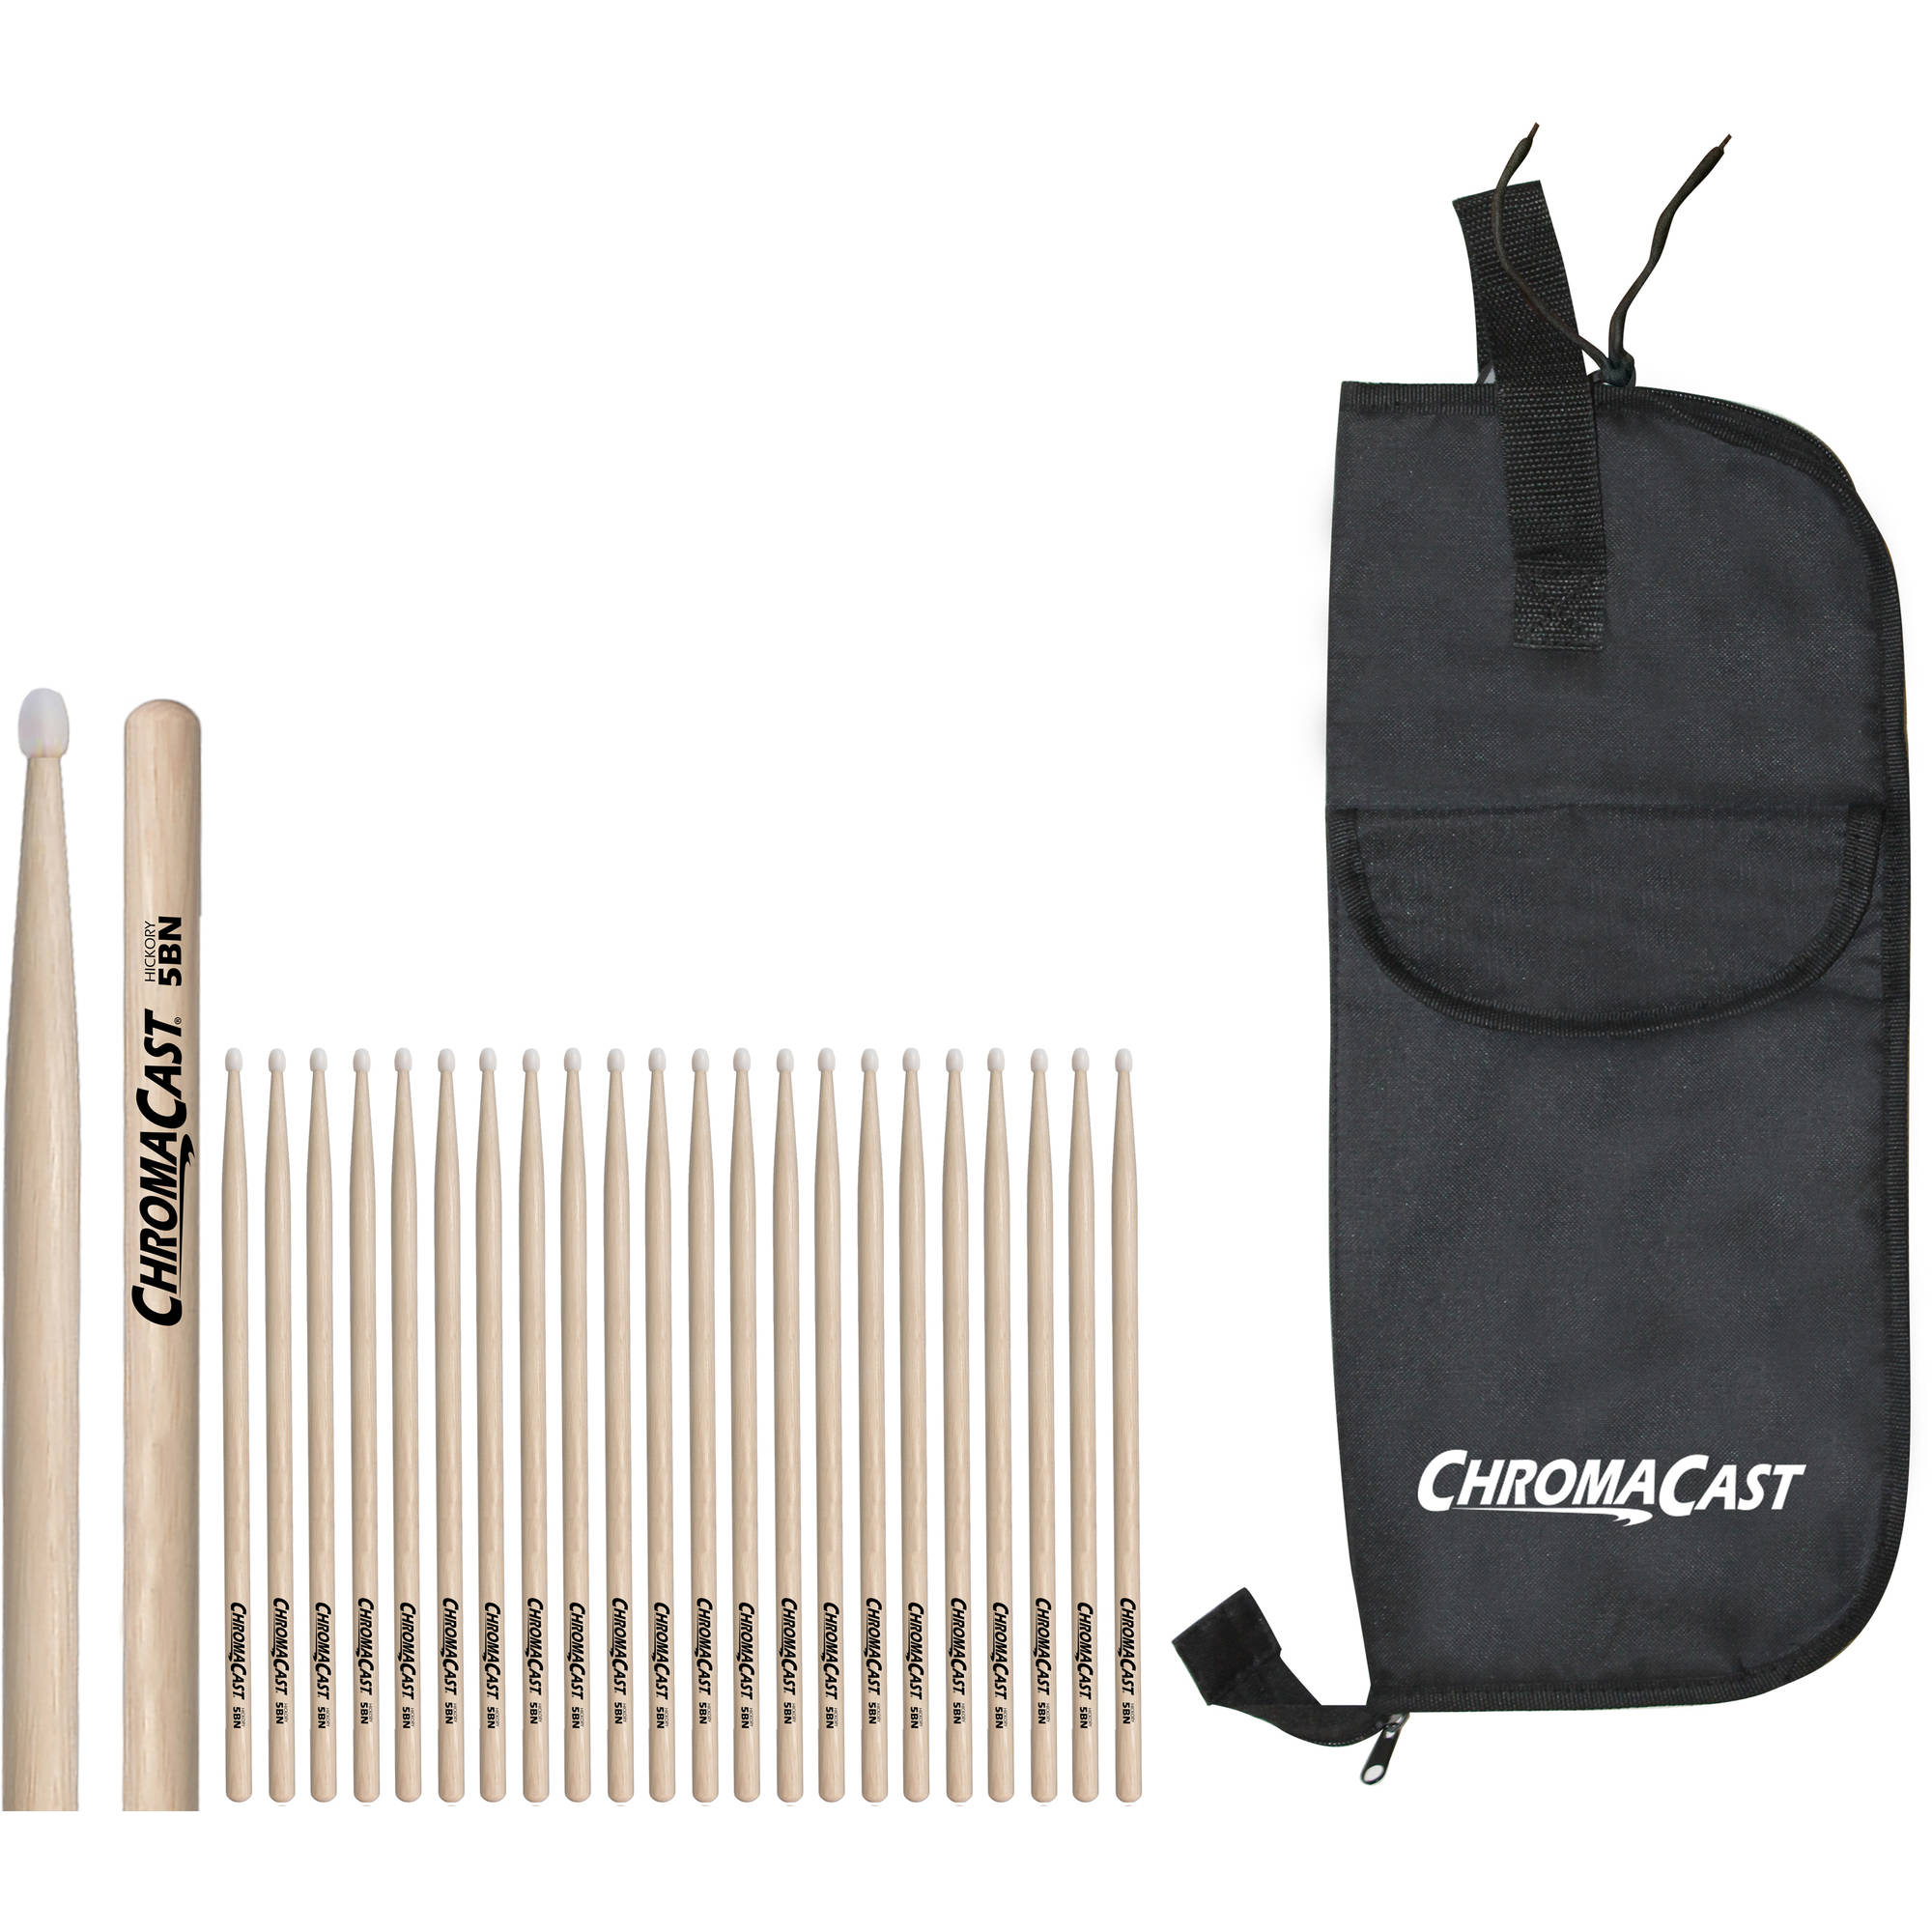 ChromaCast 5B Hickory Nylon-Tipped Drumsticks, 12 Pairs with Drumstick Bag by